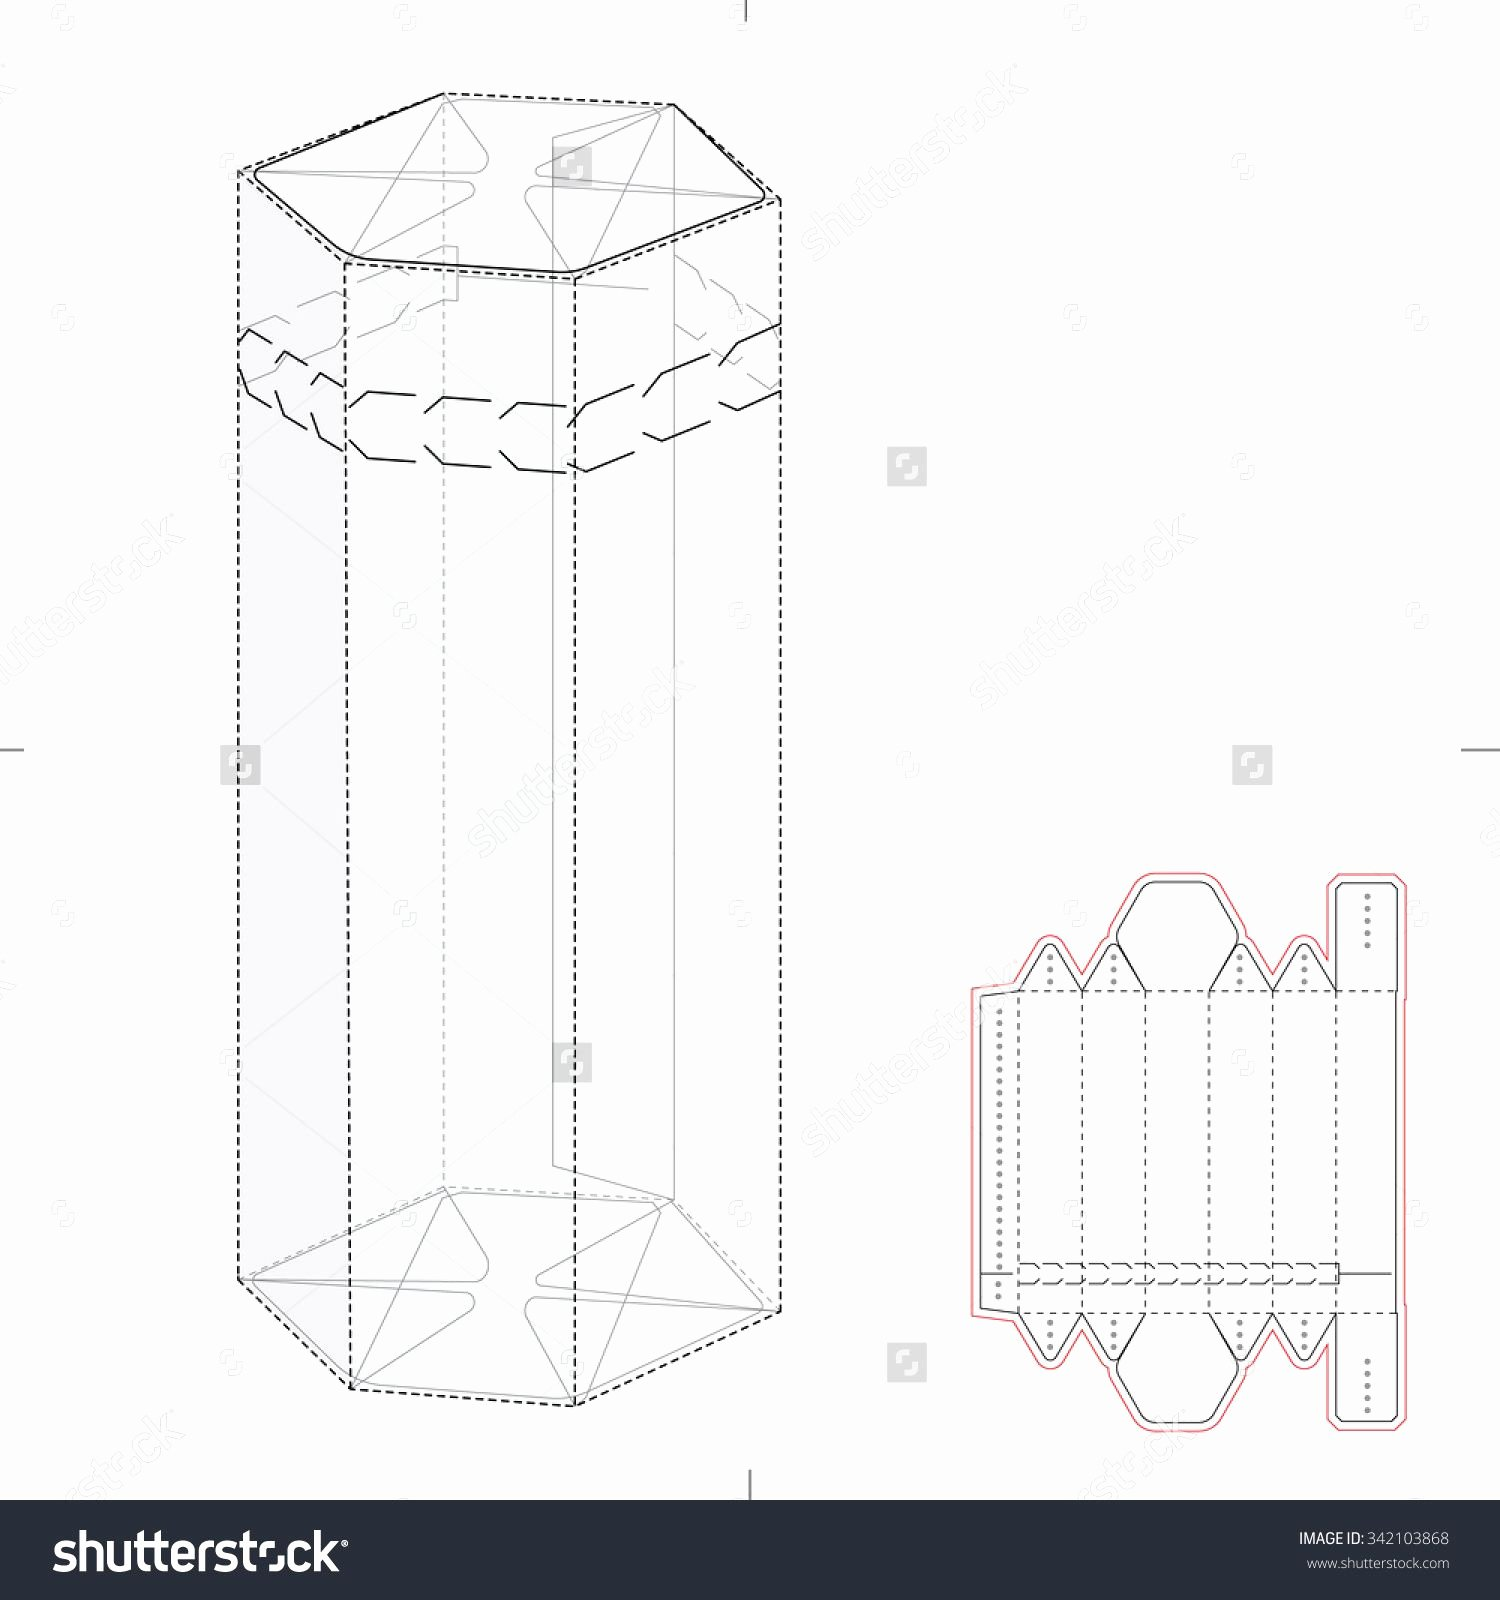 Die Cut Box Templates Awesome Hexagonal Box with Die Cut Template Stock Vector Illustration Shutterstock